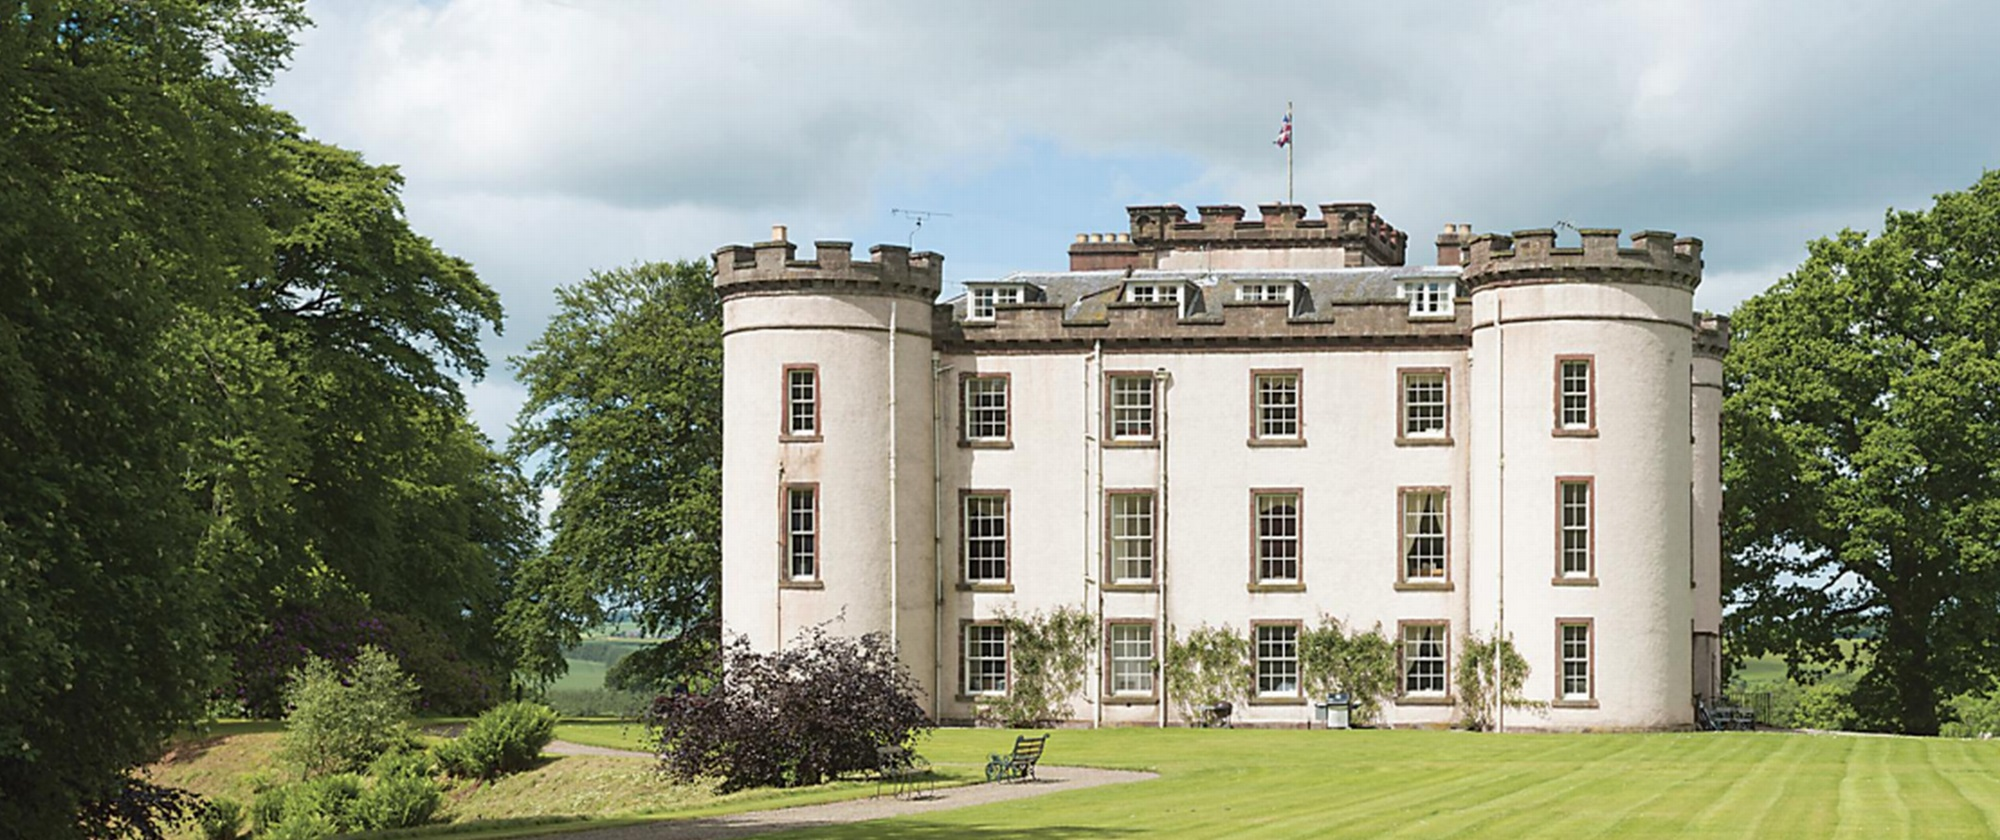 Property from Hatton Castle, Aberdeenshire